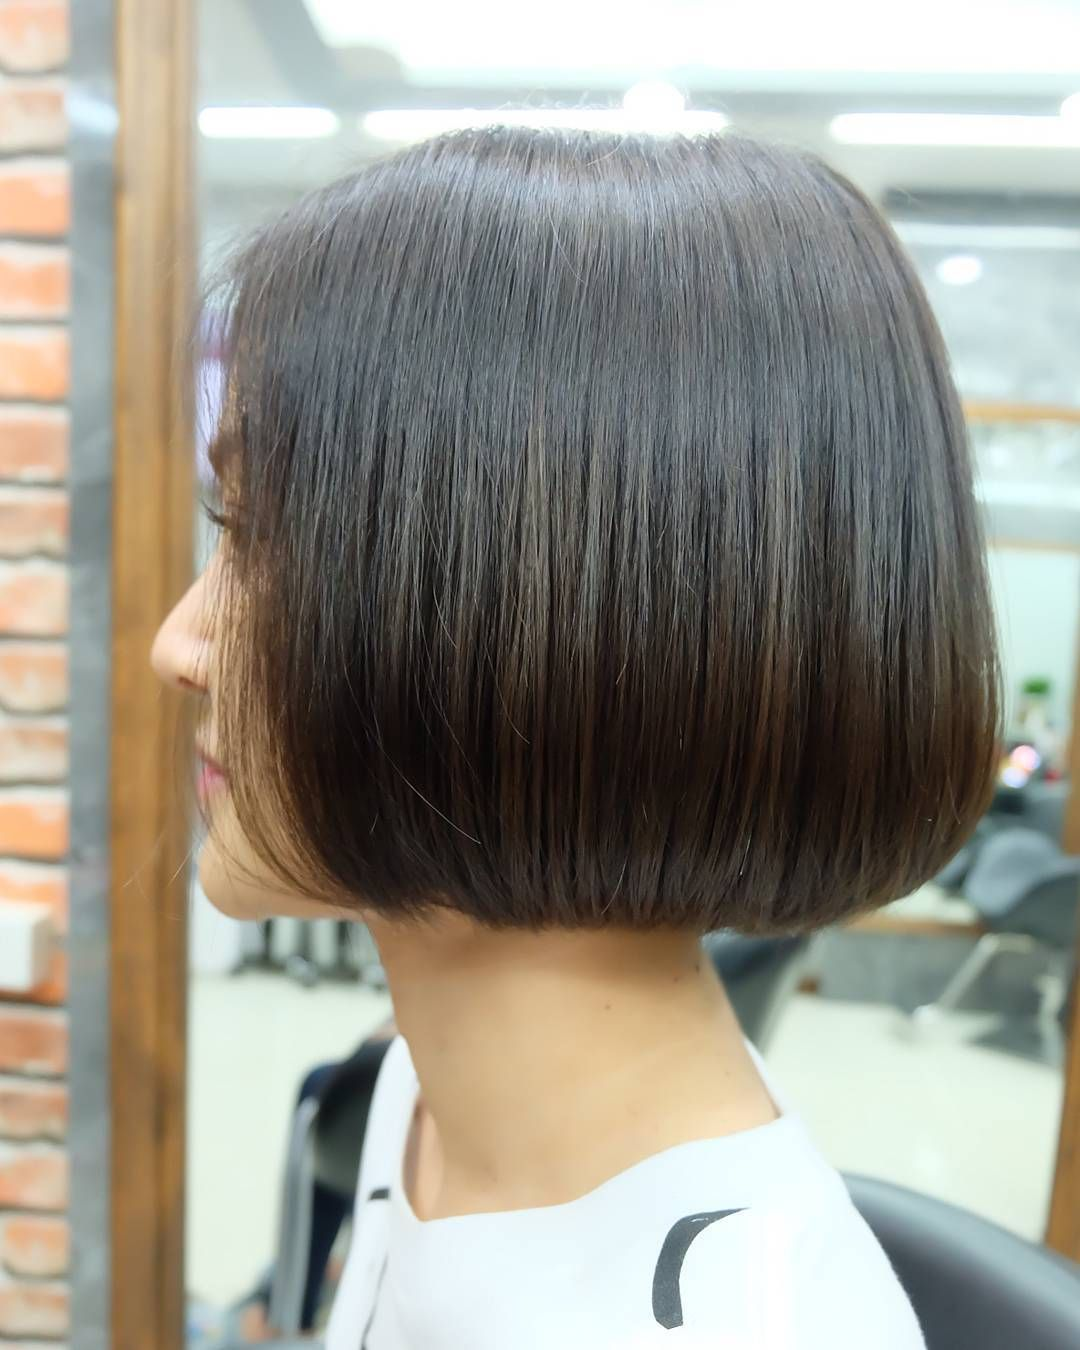 Bobcuts khunninindy cute short hairstyles pinterest bobs